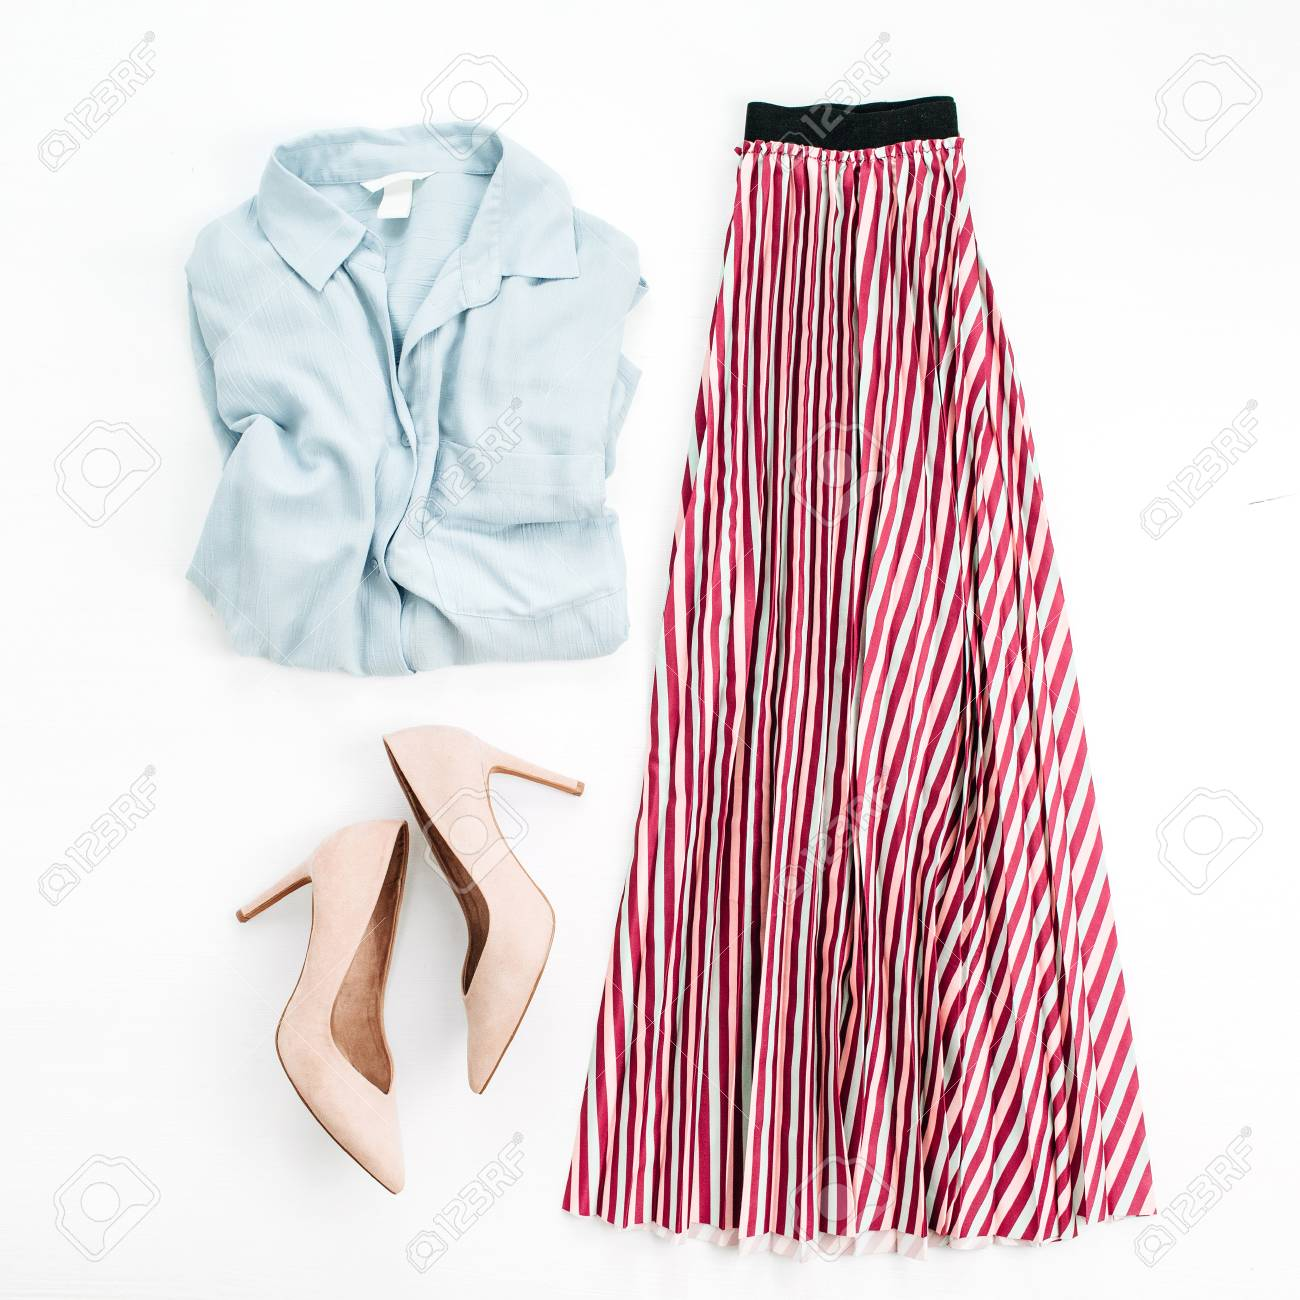 Woman clothes on white background. Jeans shirt, skirt, high heel shoes. Flat lay, top view. Minimal fashion collage.